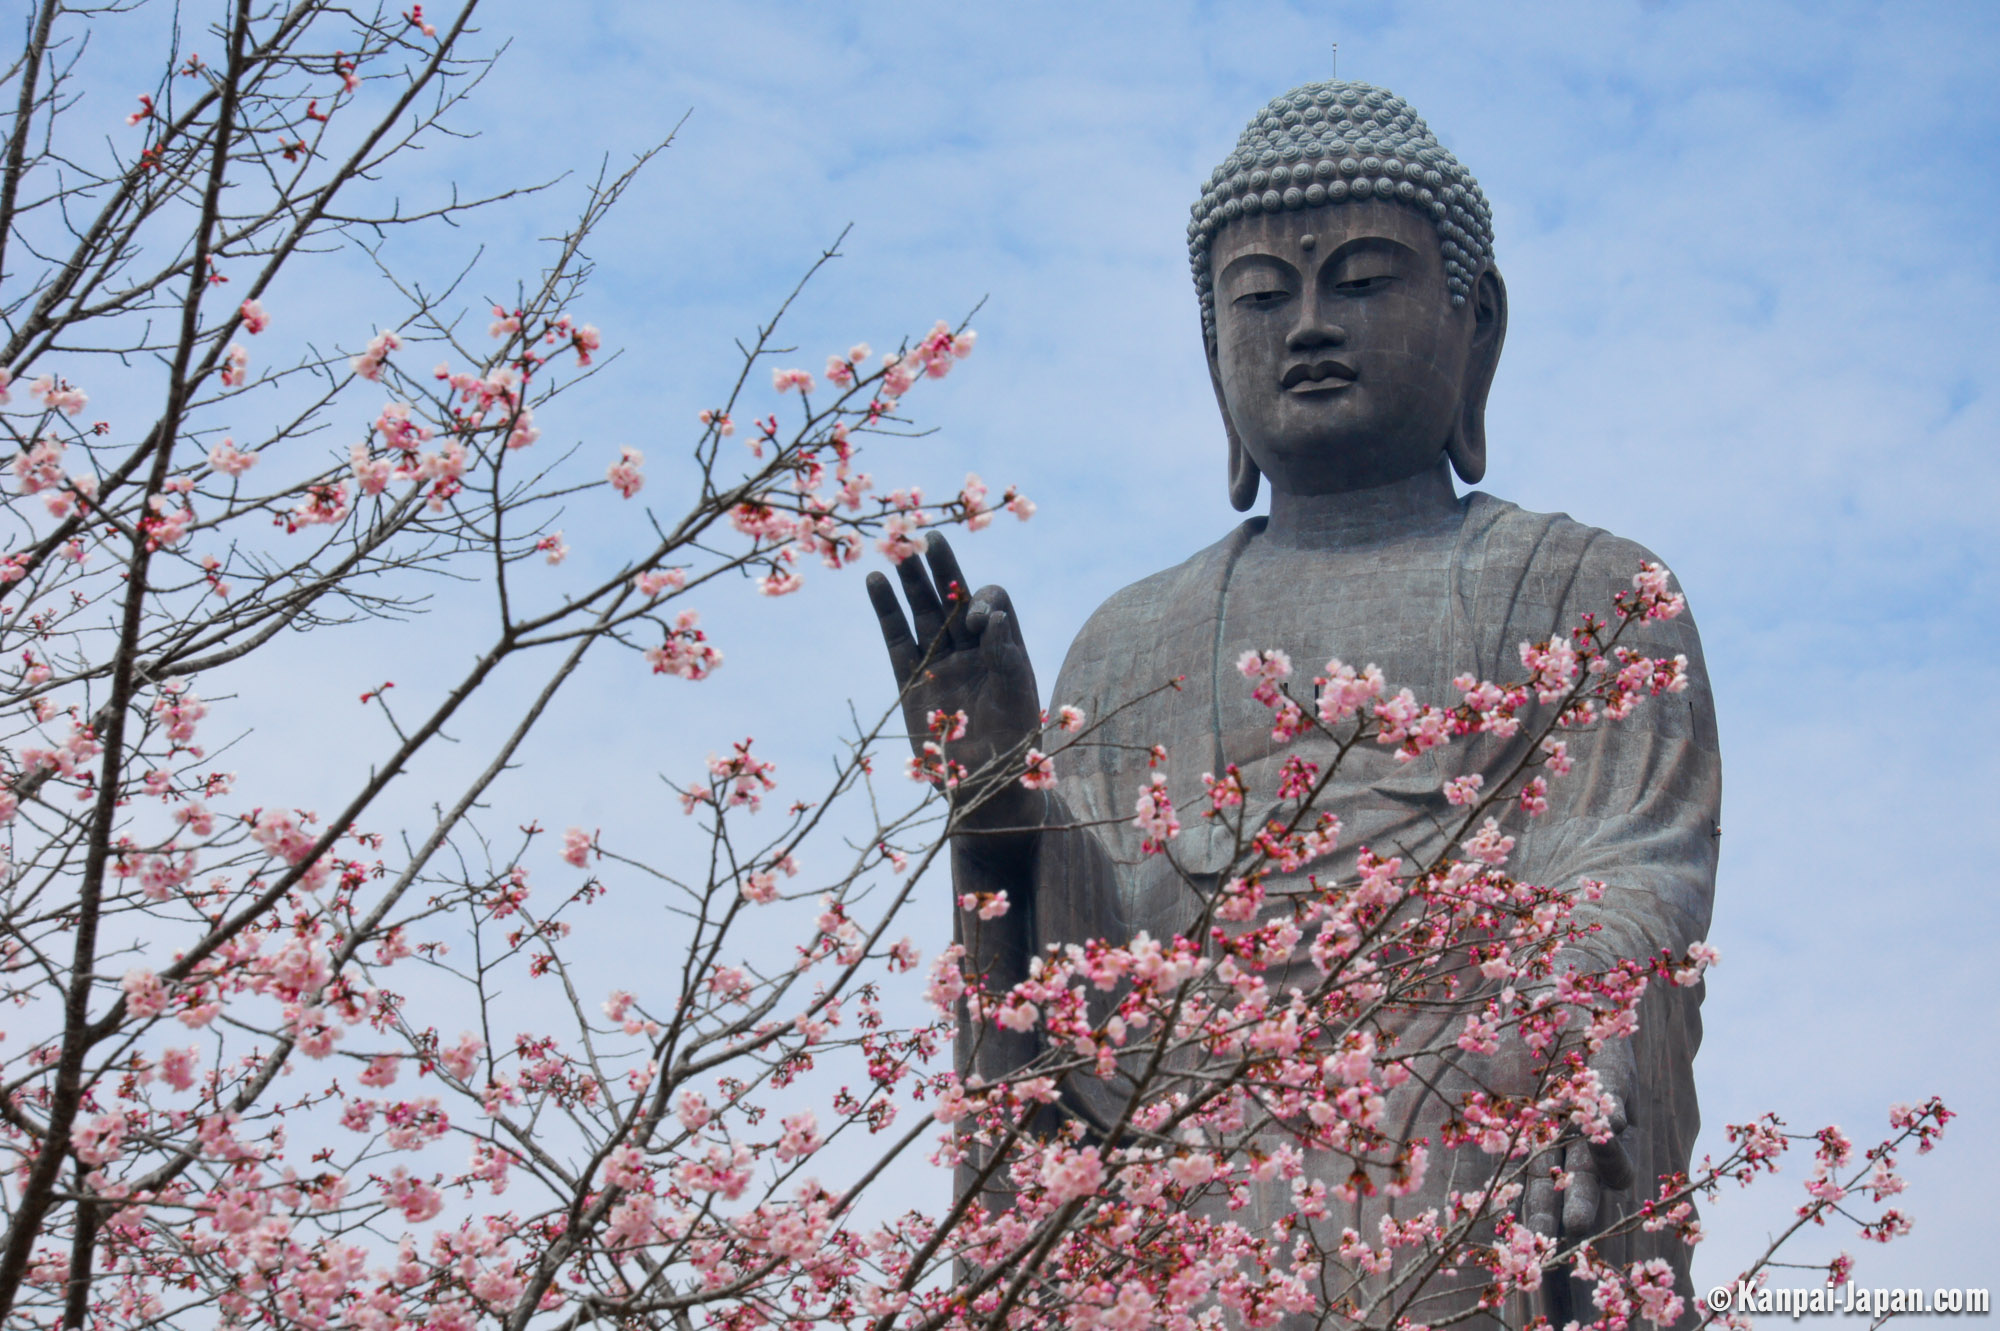 Ushiku - The largest Buddha in the world